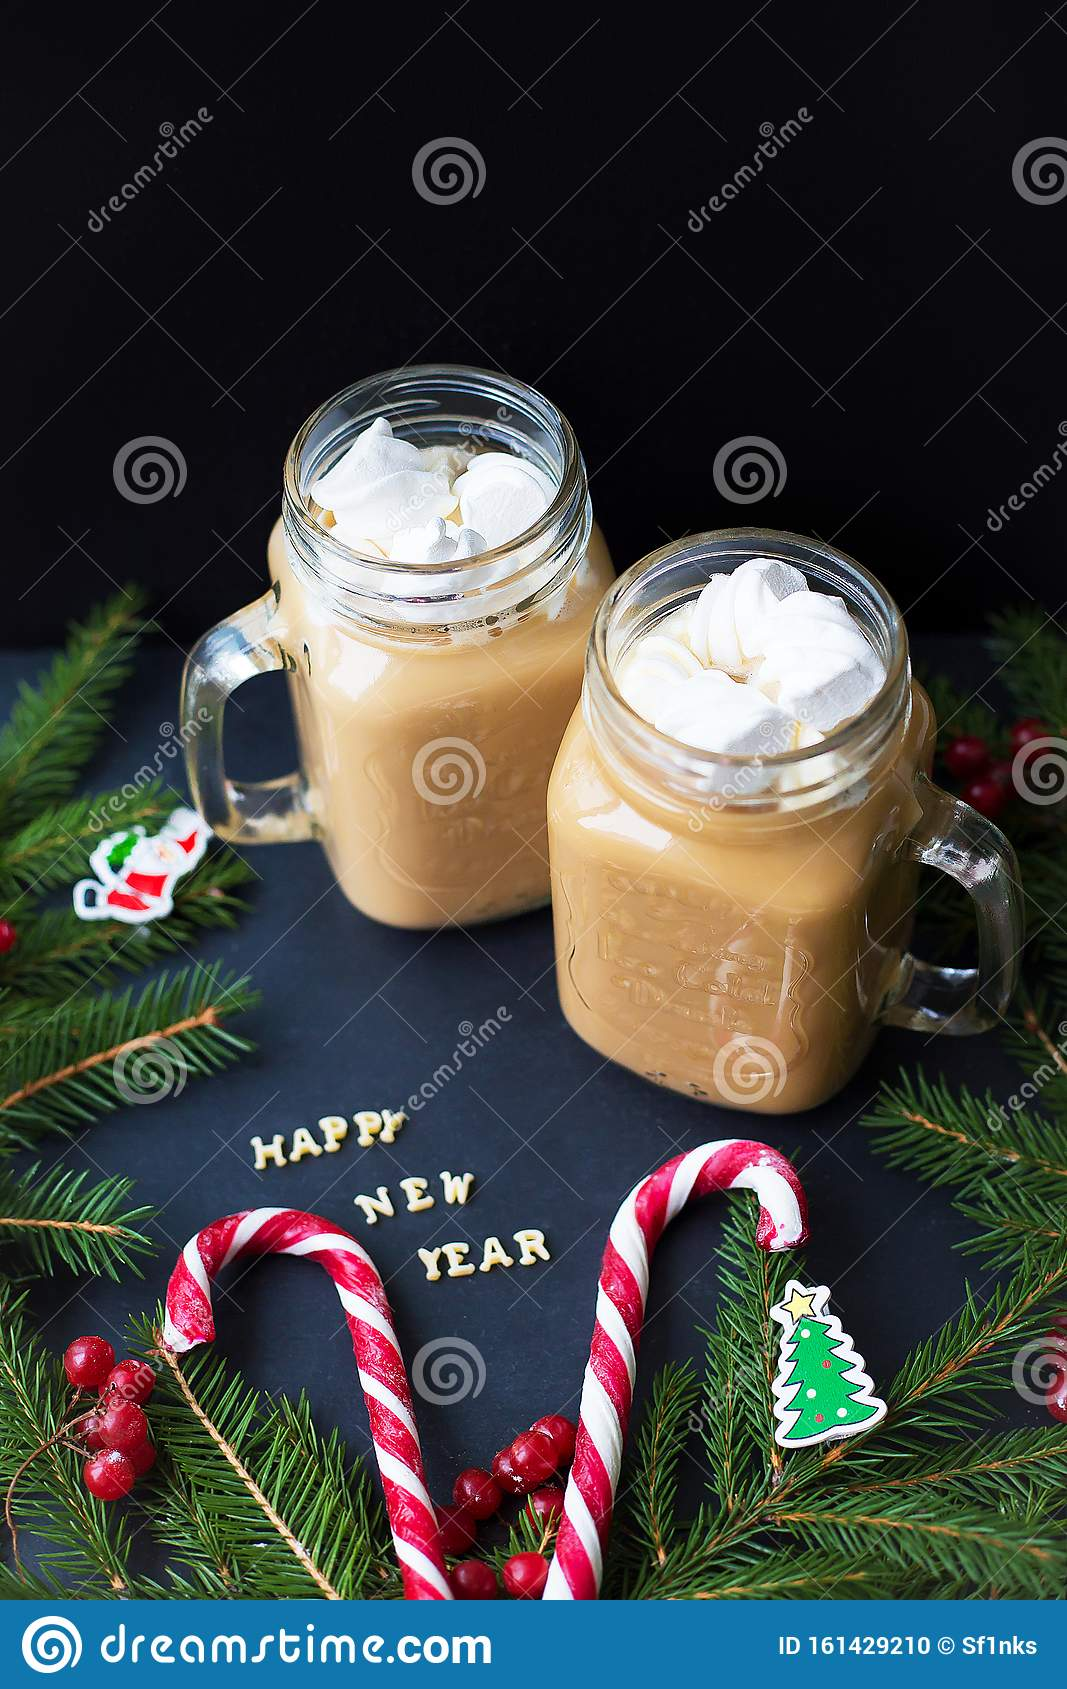 Marshmellou Cocoa Christmas Tree Ornaments And Candy On A Black Background The Inscription Happy New Year Stock Photo Image Of Aroma Candy 161429210